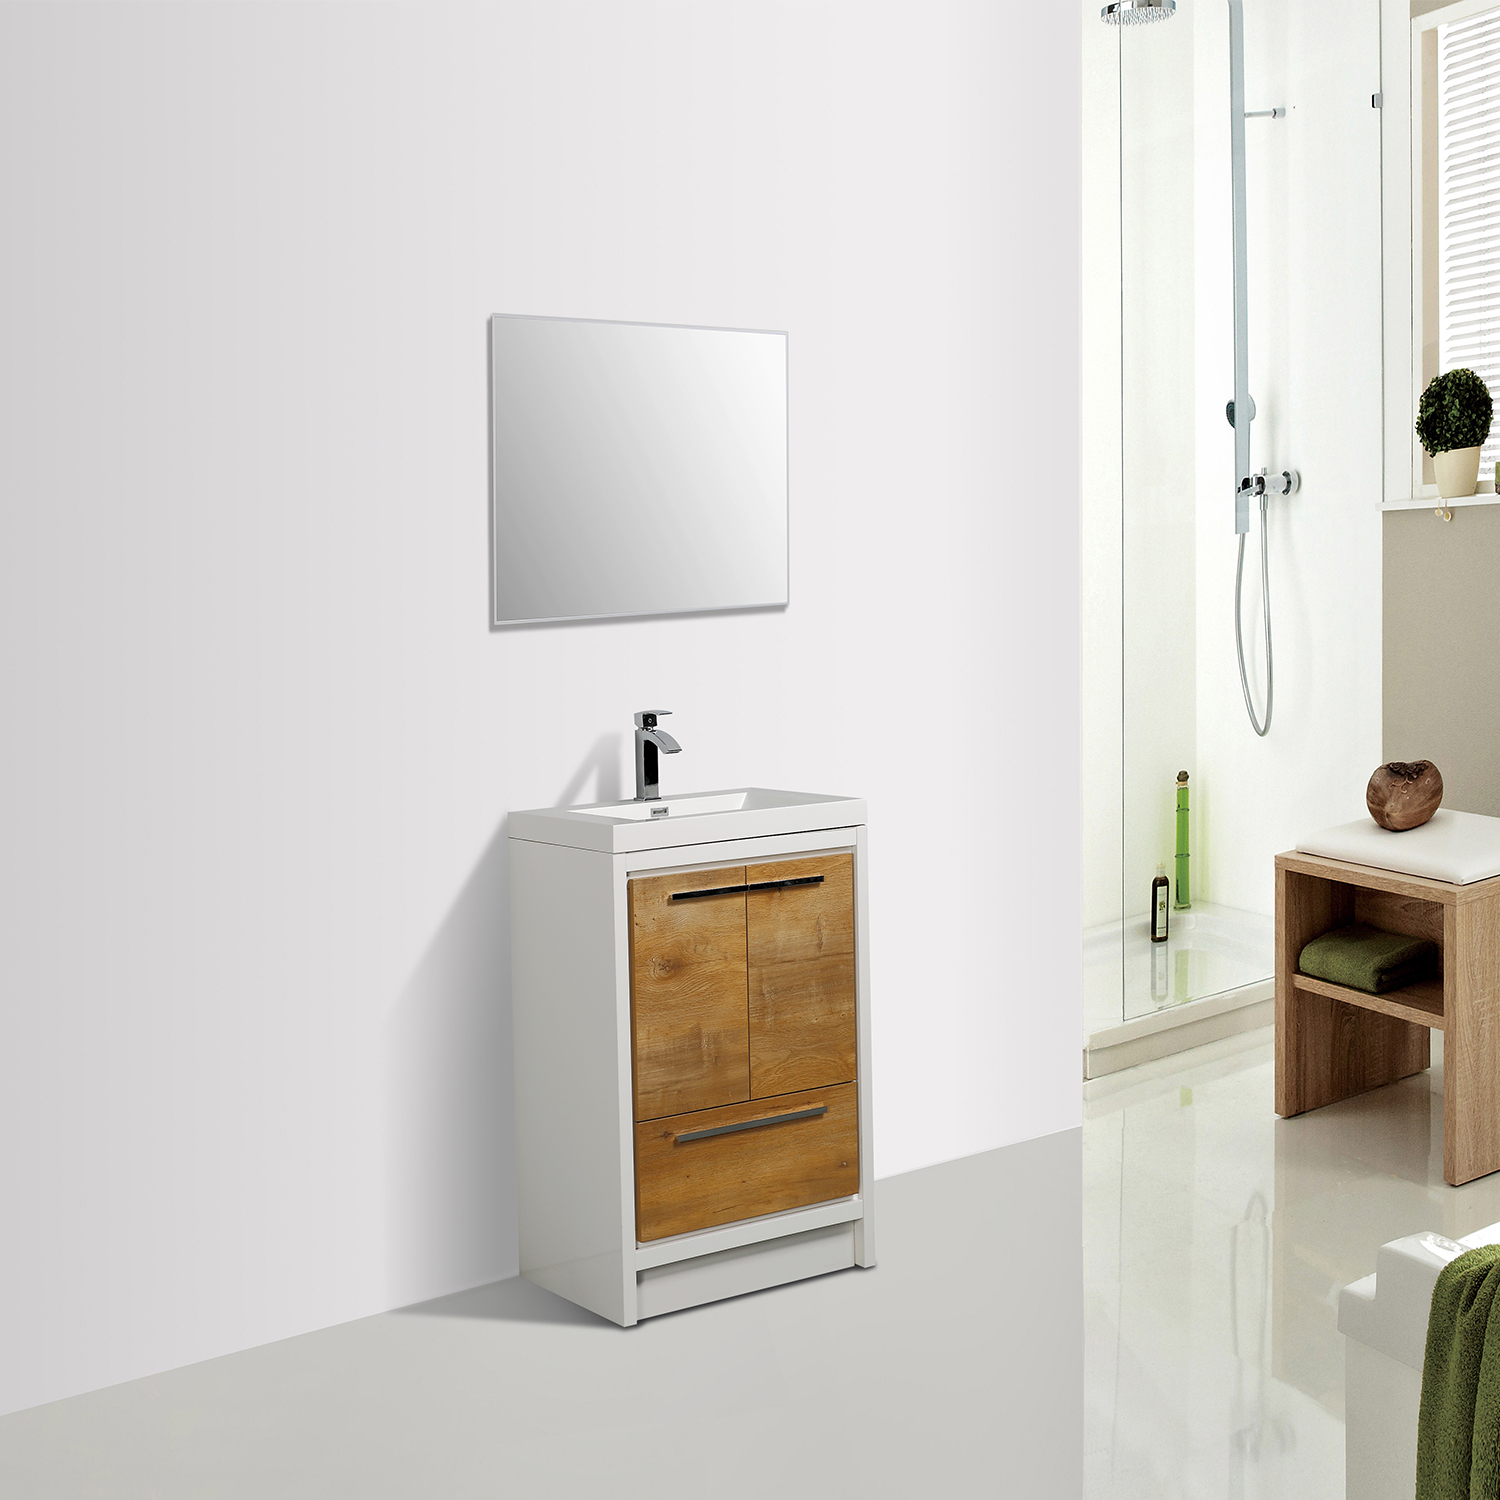 EVVN765 30NOK WH A Main - Eviva Grace 30 in. Natural Oak and White Bathroom Vanity with White Integrated Acrylic Countertop